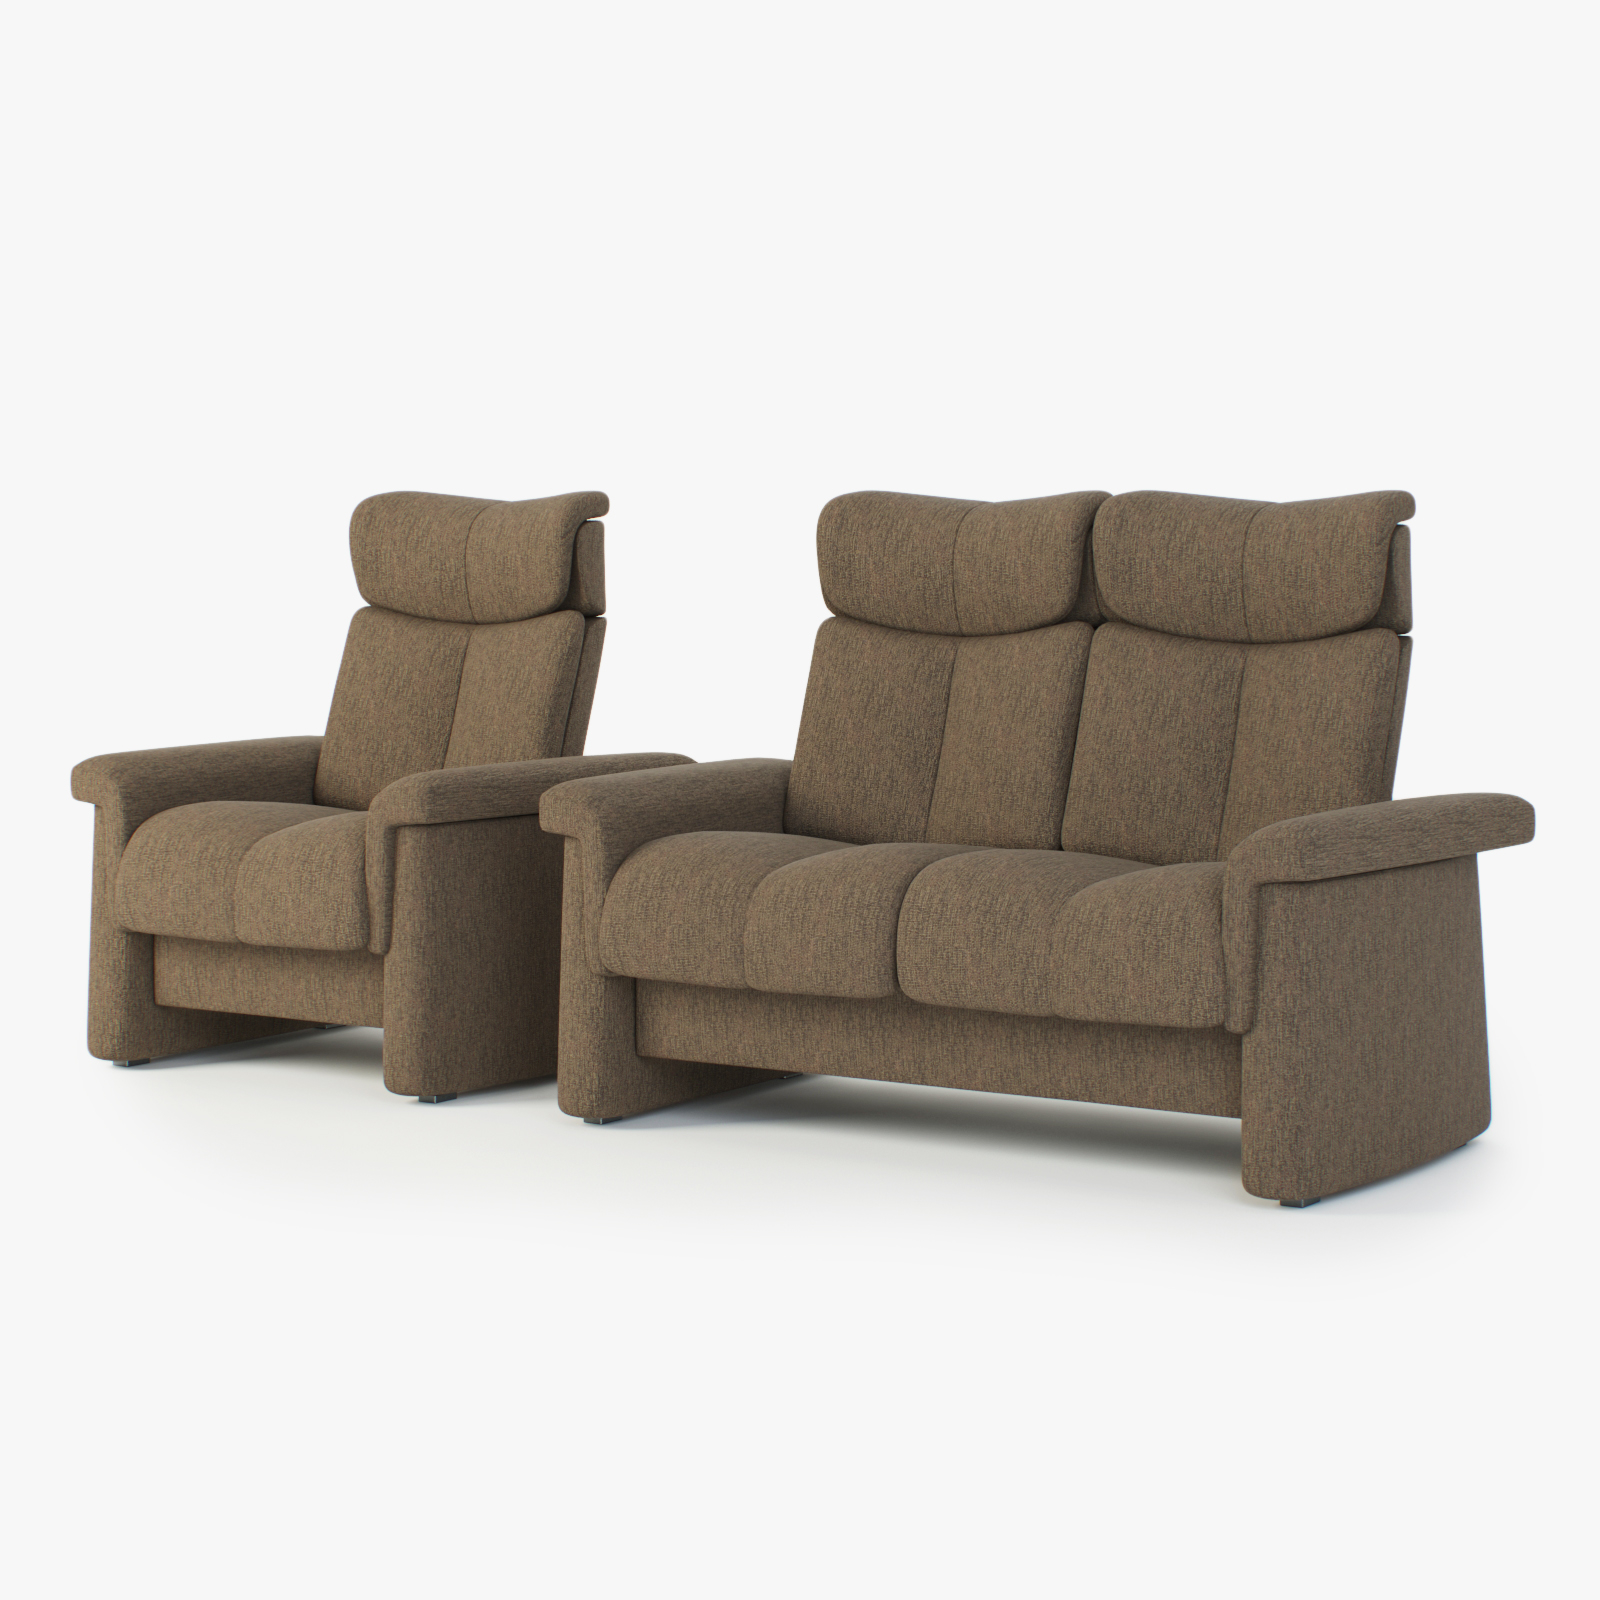 Full Size of Ekornes Stressless Sofa Used Leather Review Couches Sale Stella Sofas And Chairs Uk Cost Kombination Arion Second Hand For Windsor Kunstleder Reiniger Bora Sofa Stressless Sofa